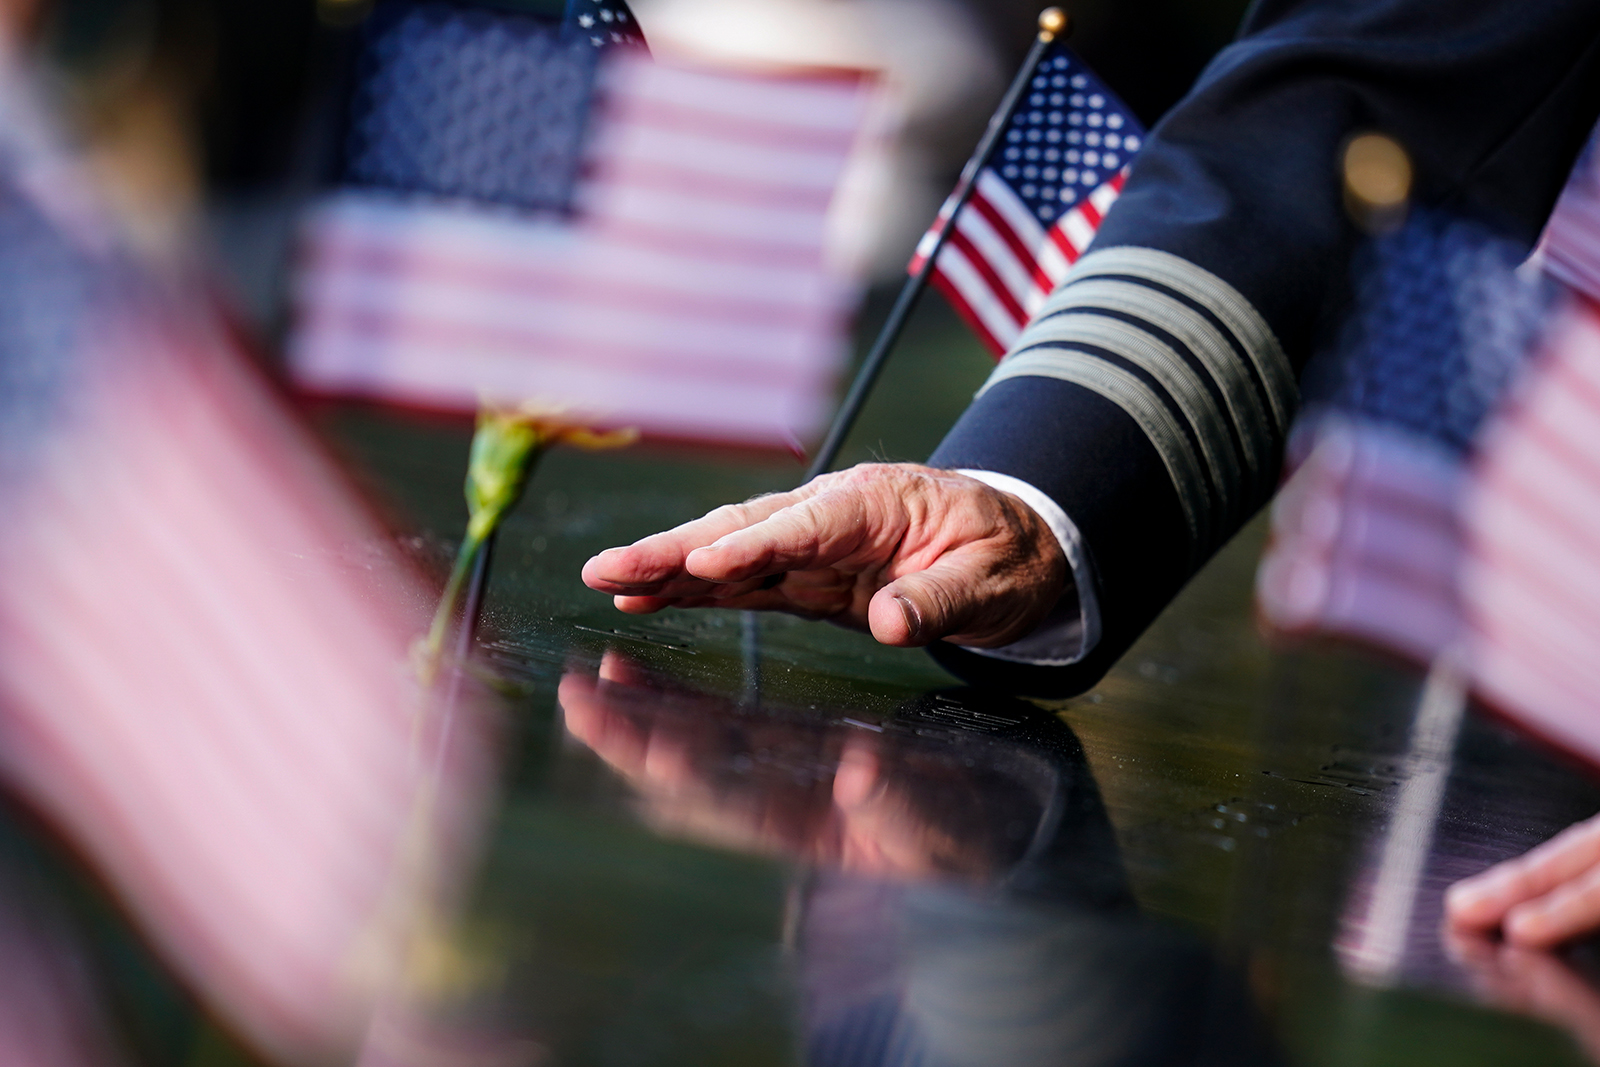 A person touches an inscribed name at the National September 11 Memorial and Museum ahead of the 20th anniversary of the 9/11 terrorist attacks, Friday, Sept. 10, 2021, in New York.